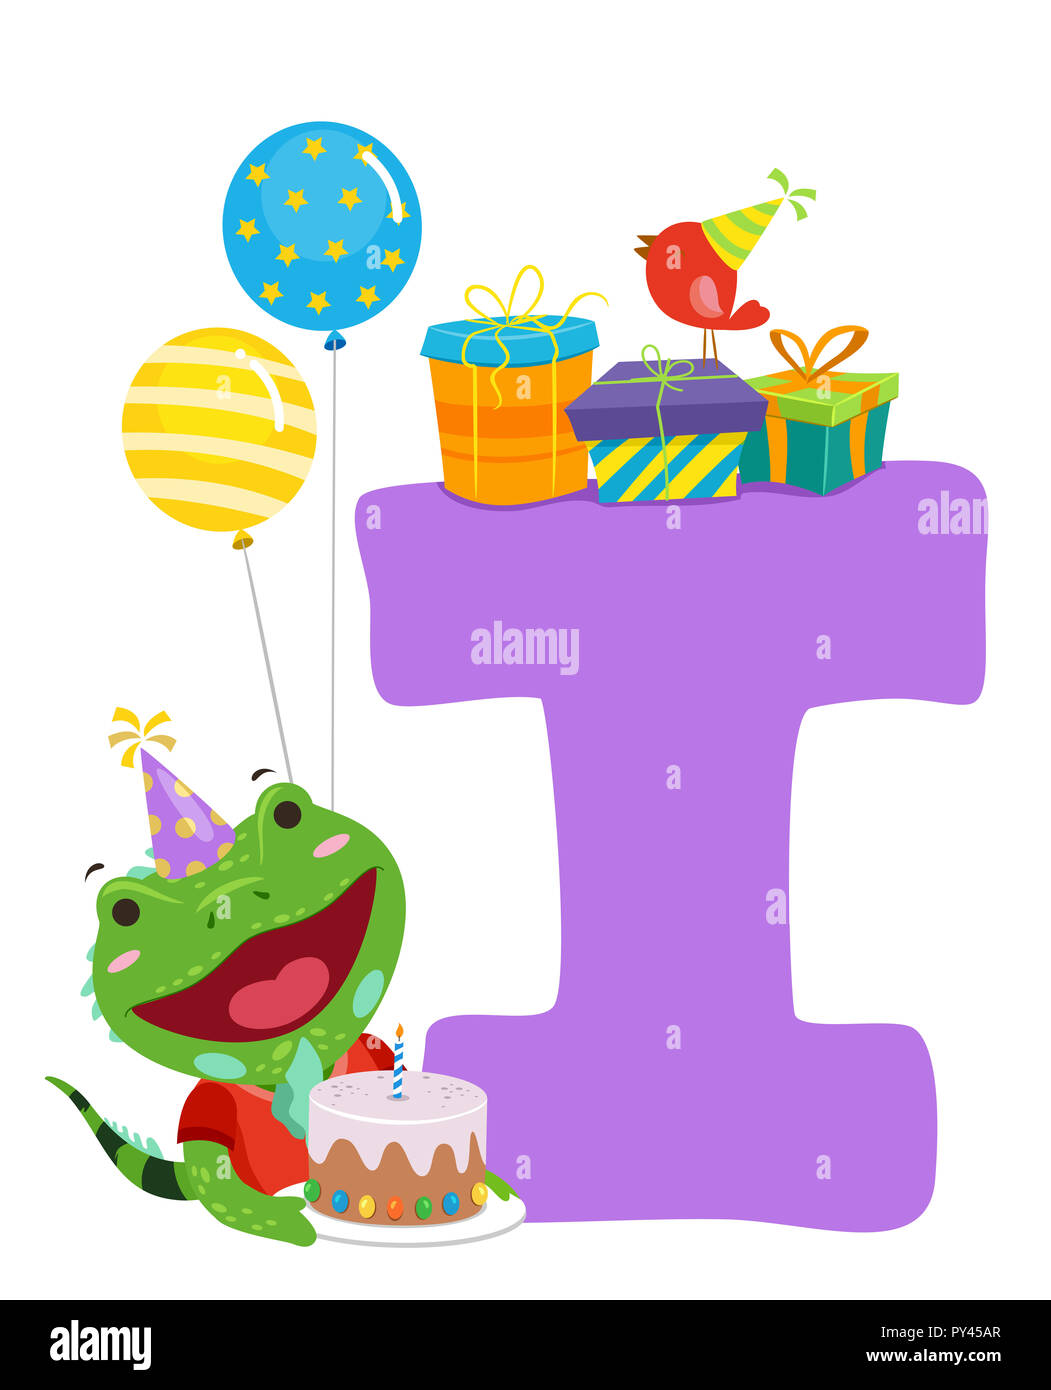 Illustration Of An Iguana With A Birthday Cake Balloons And Gifts